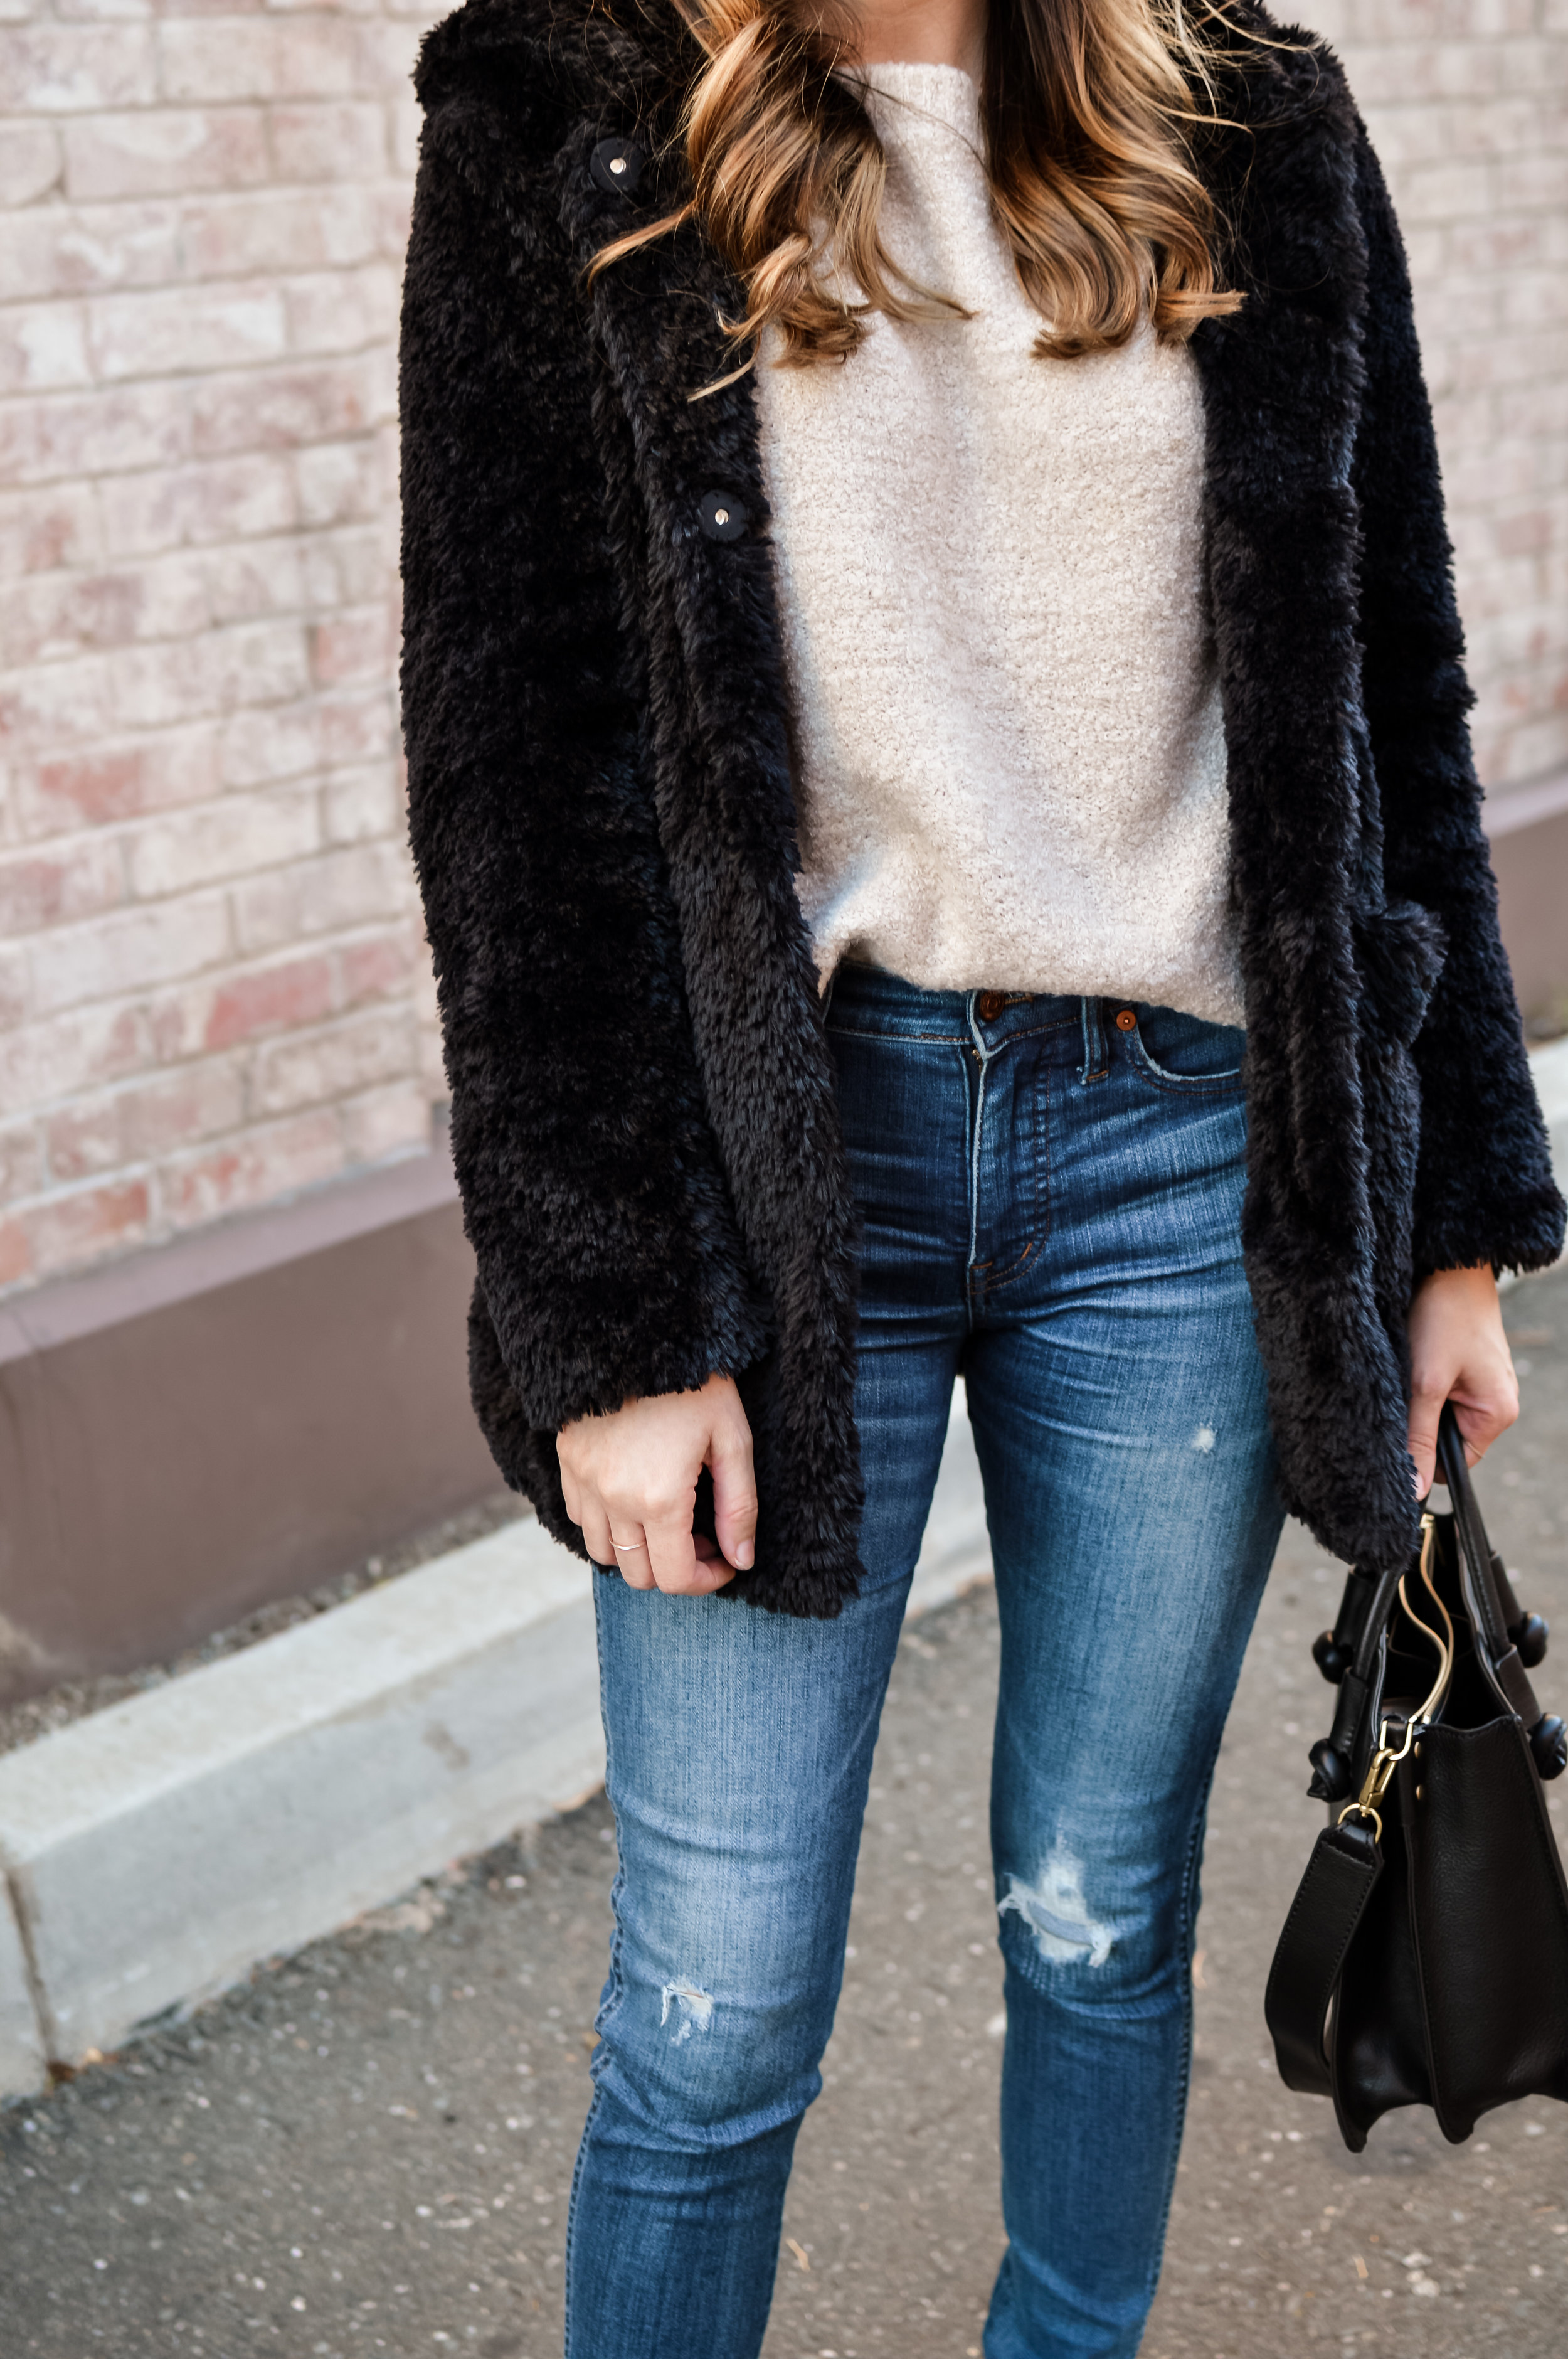 black teddy coat outfit